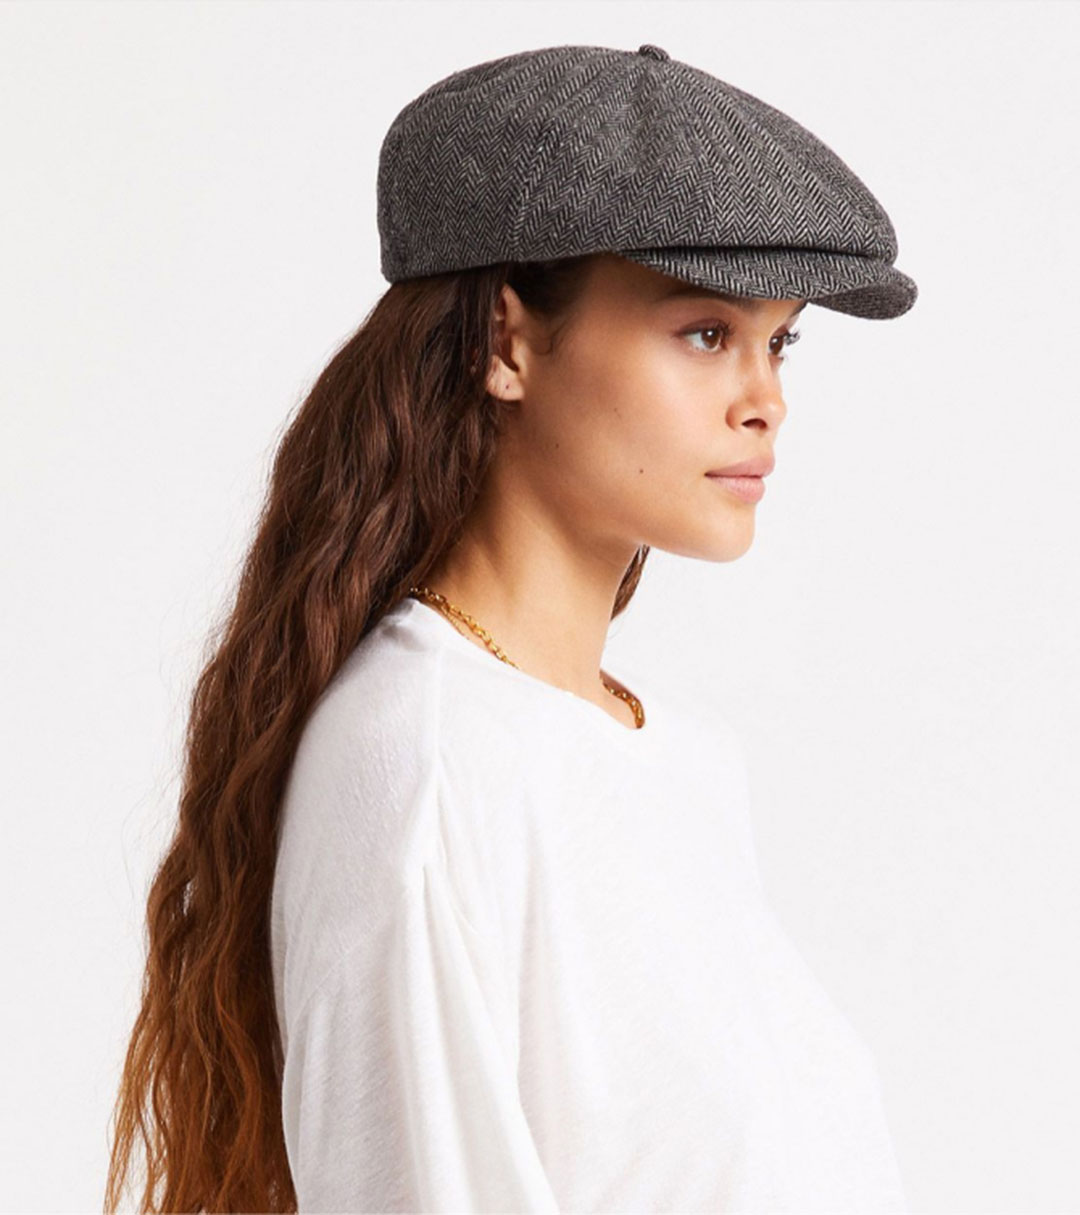 Women's Newsboy Caps